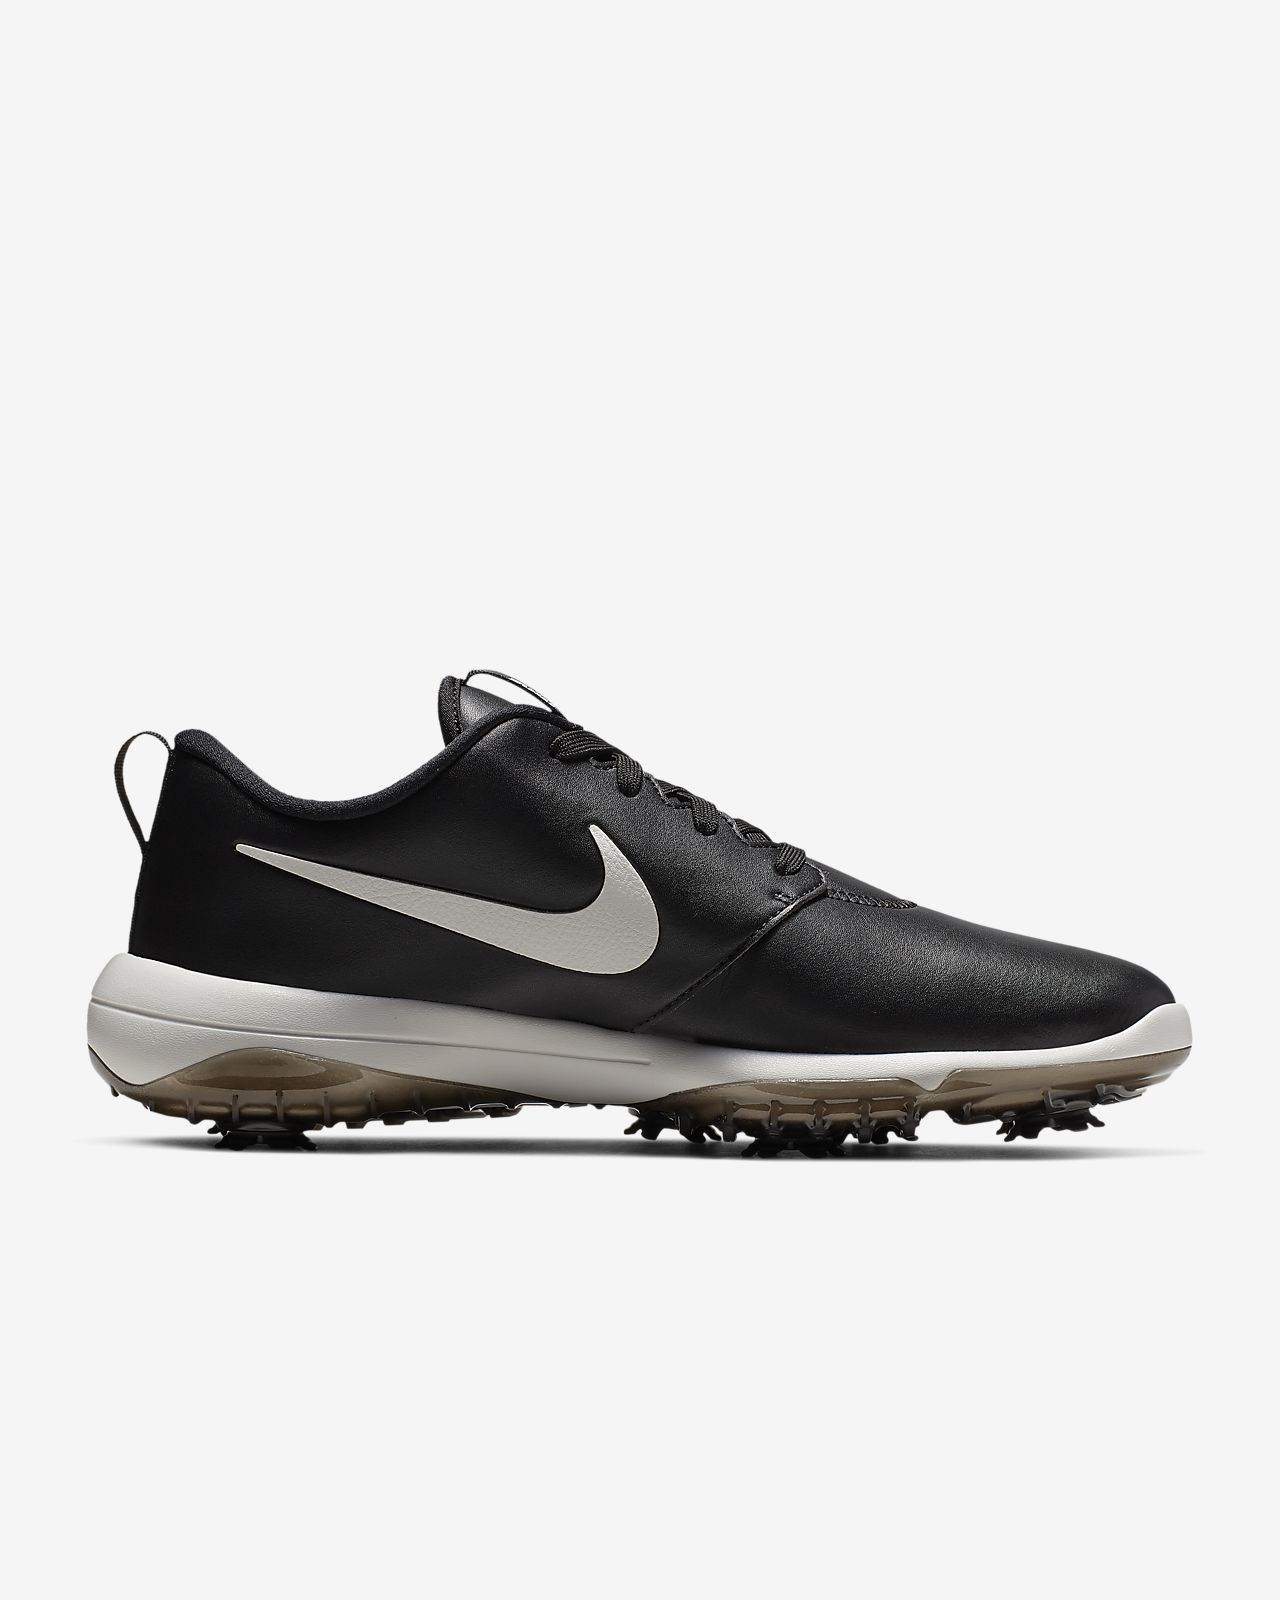 7b29d6ad6f6f Nike Roshe G Tour Men s Golf Shoe. Nike.com SA